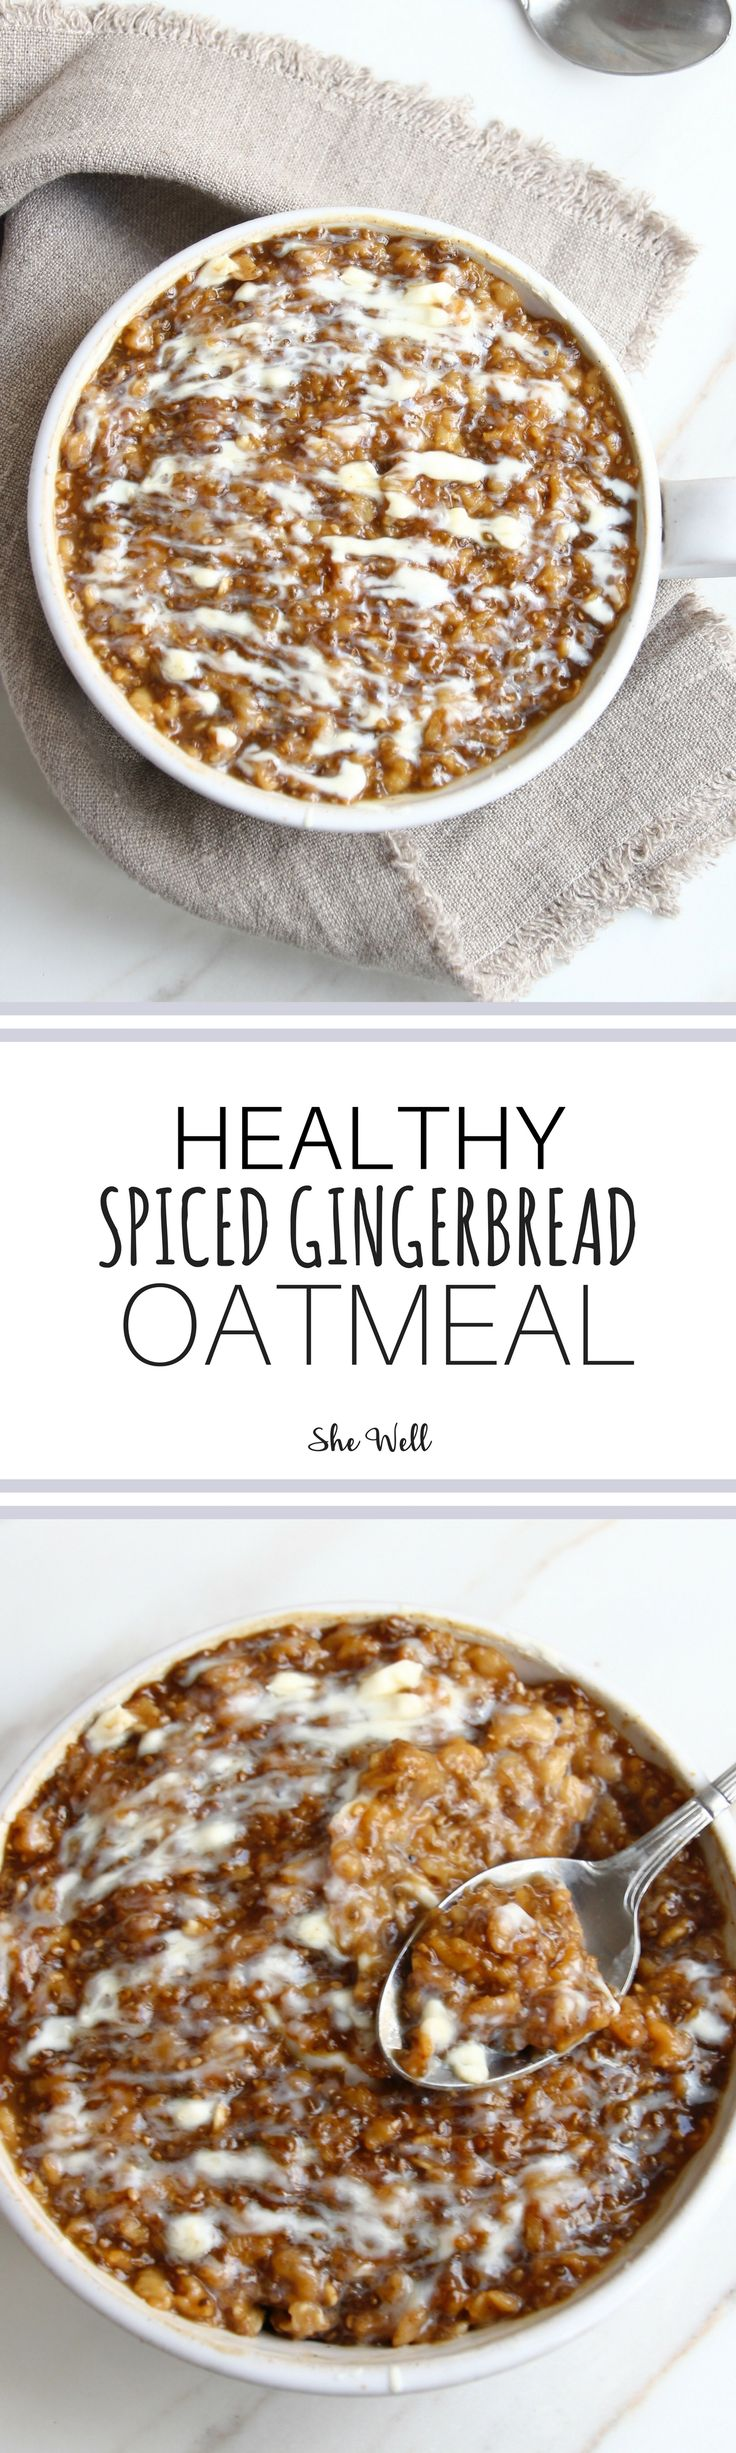 This healthy gingerbread oatmeal is the perfect breakfast or snack for the holidays! Great for people who are vegan, vegetarian, dairy-free and can be made gluten-free! Click to read now or pin for later!